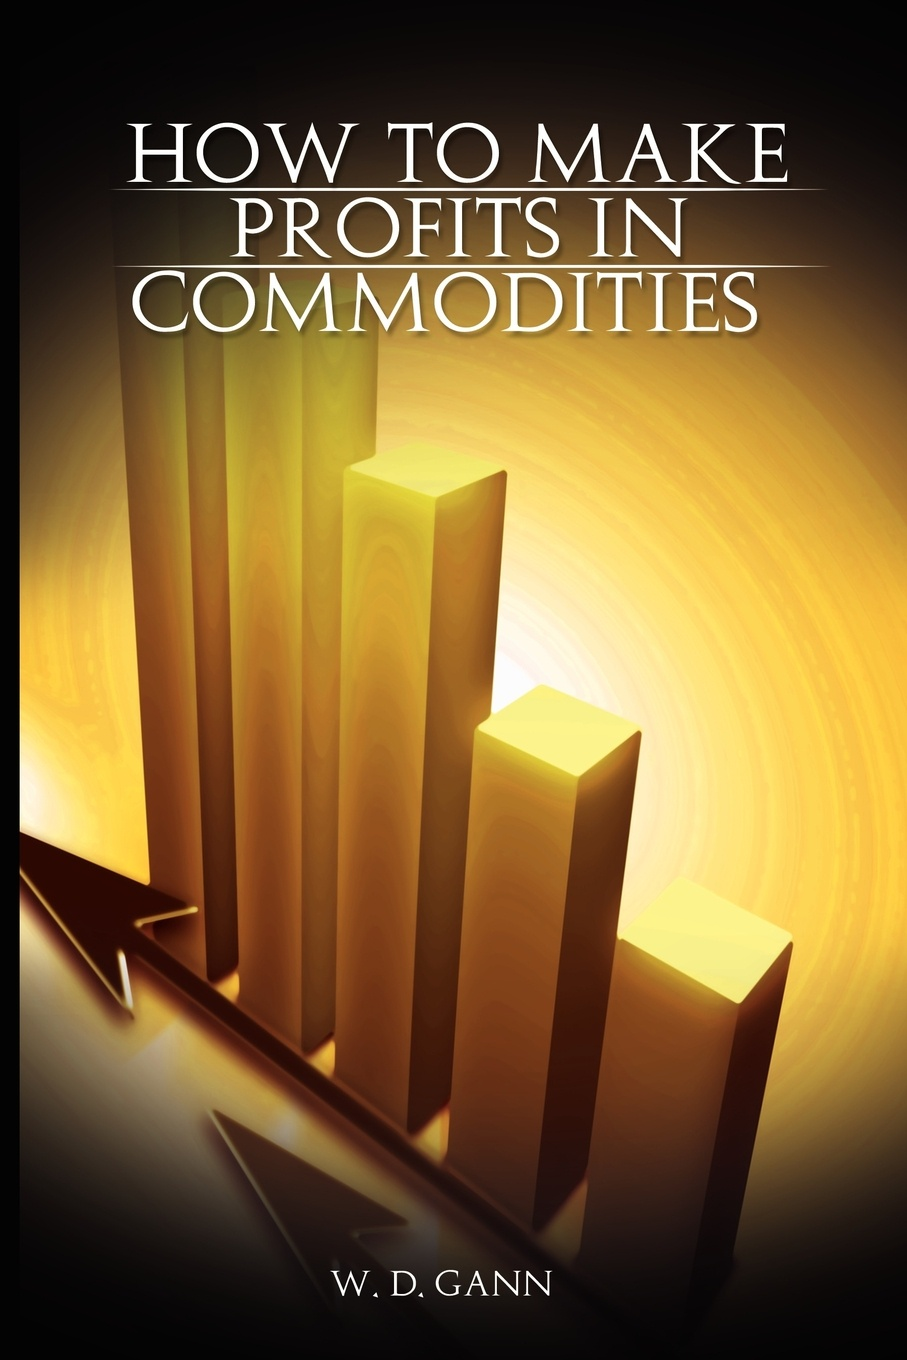 W. D. Gann How to Make Profits In Commodities david nassar s ordinary people extraordinary profits how to make a living as an independent stock options and futures trader